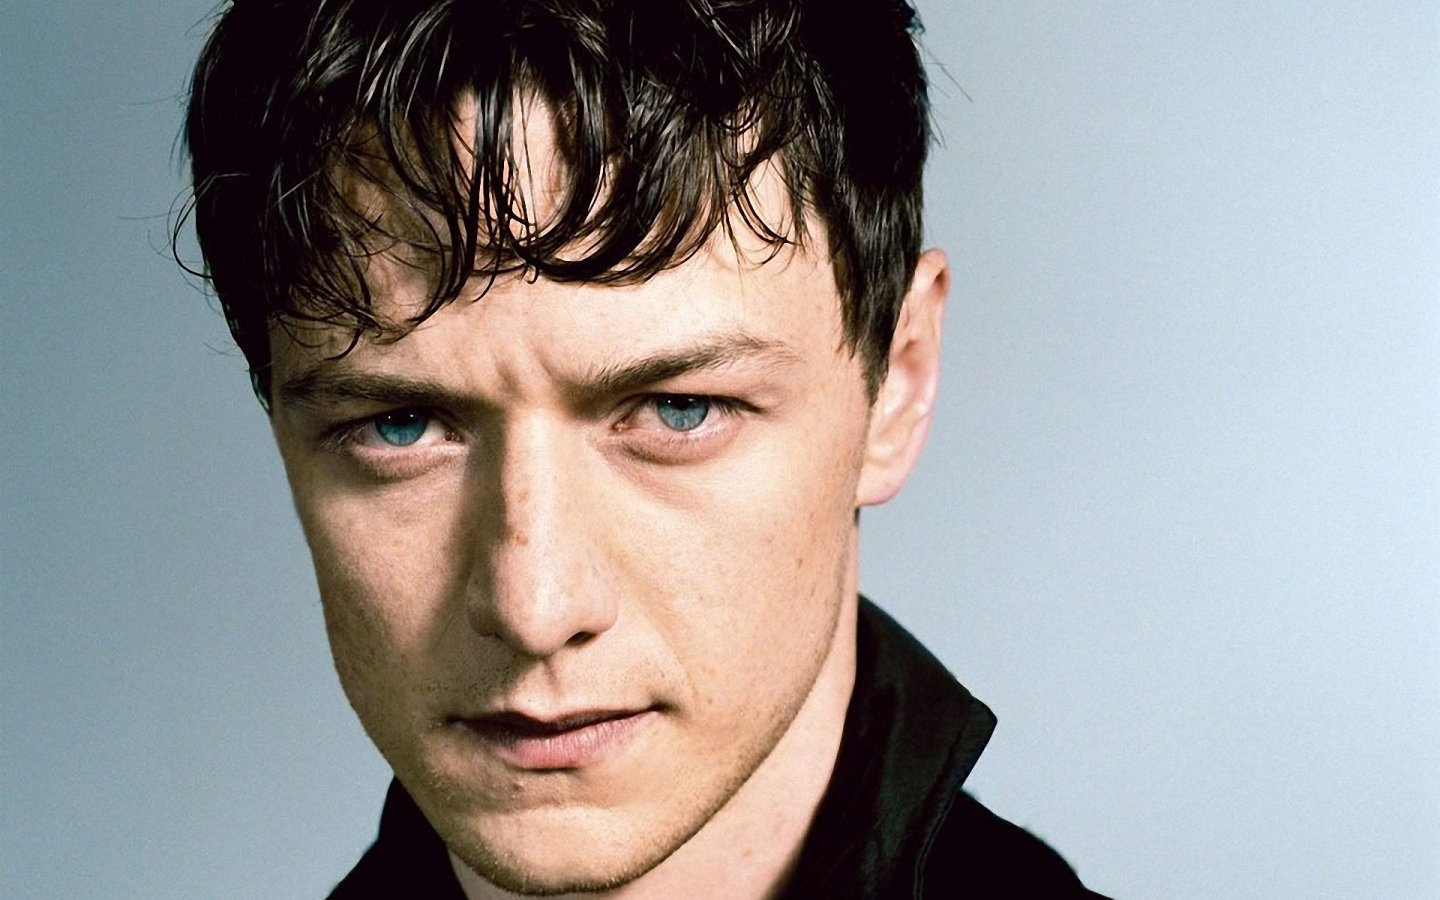 james mcavoy face wallpaper 54617